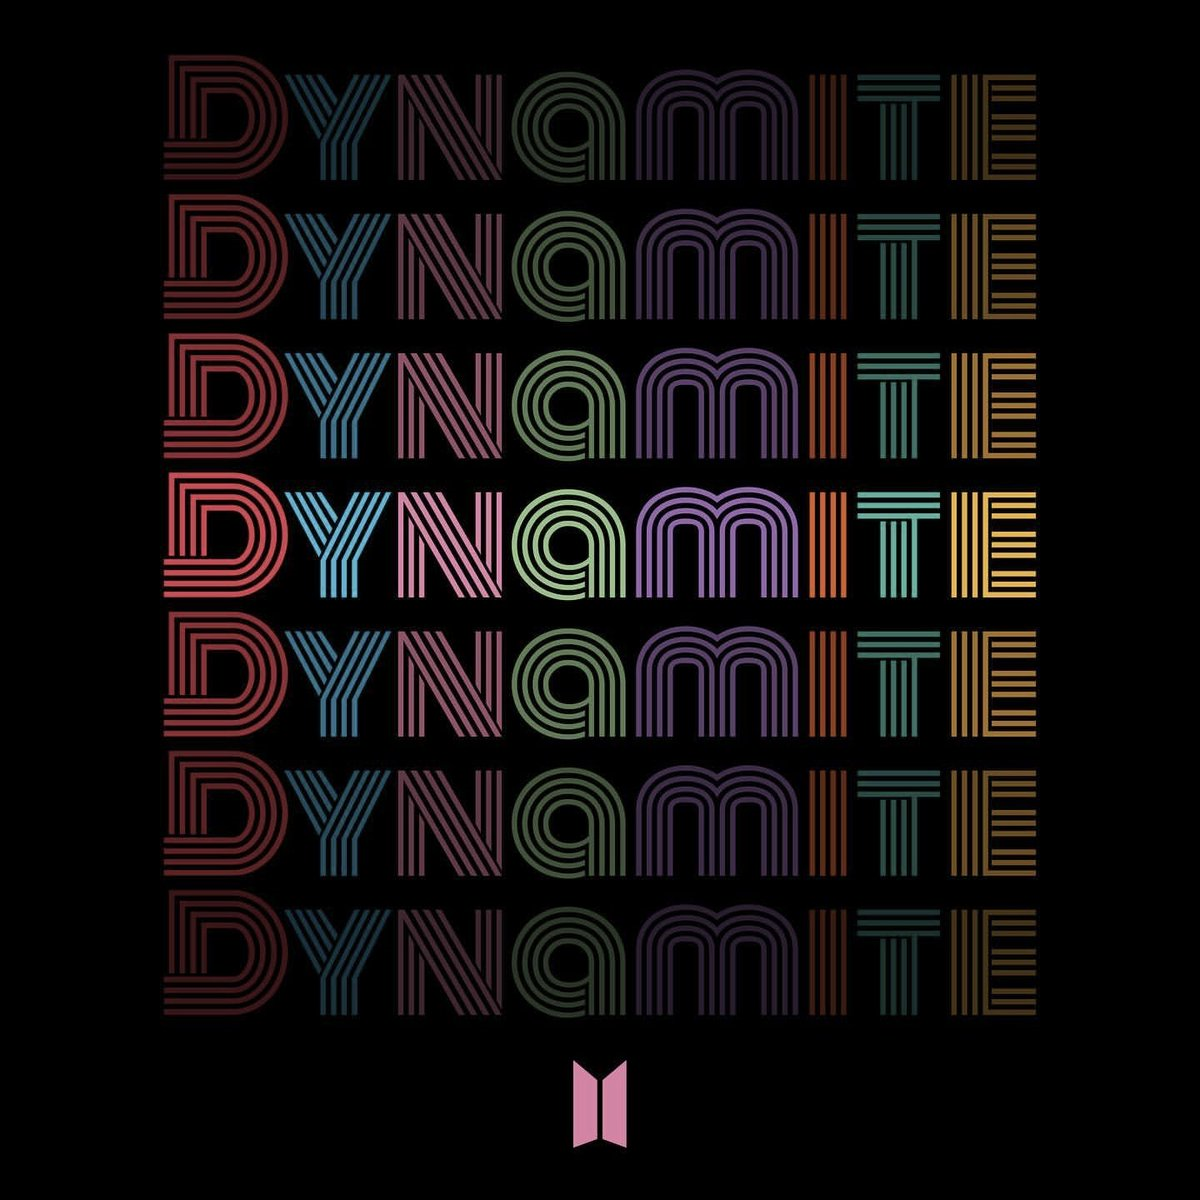 BTS Dynamite album cover (NightTime).png